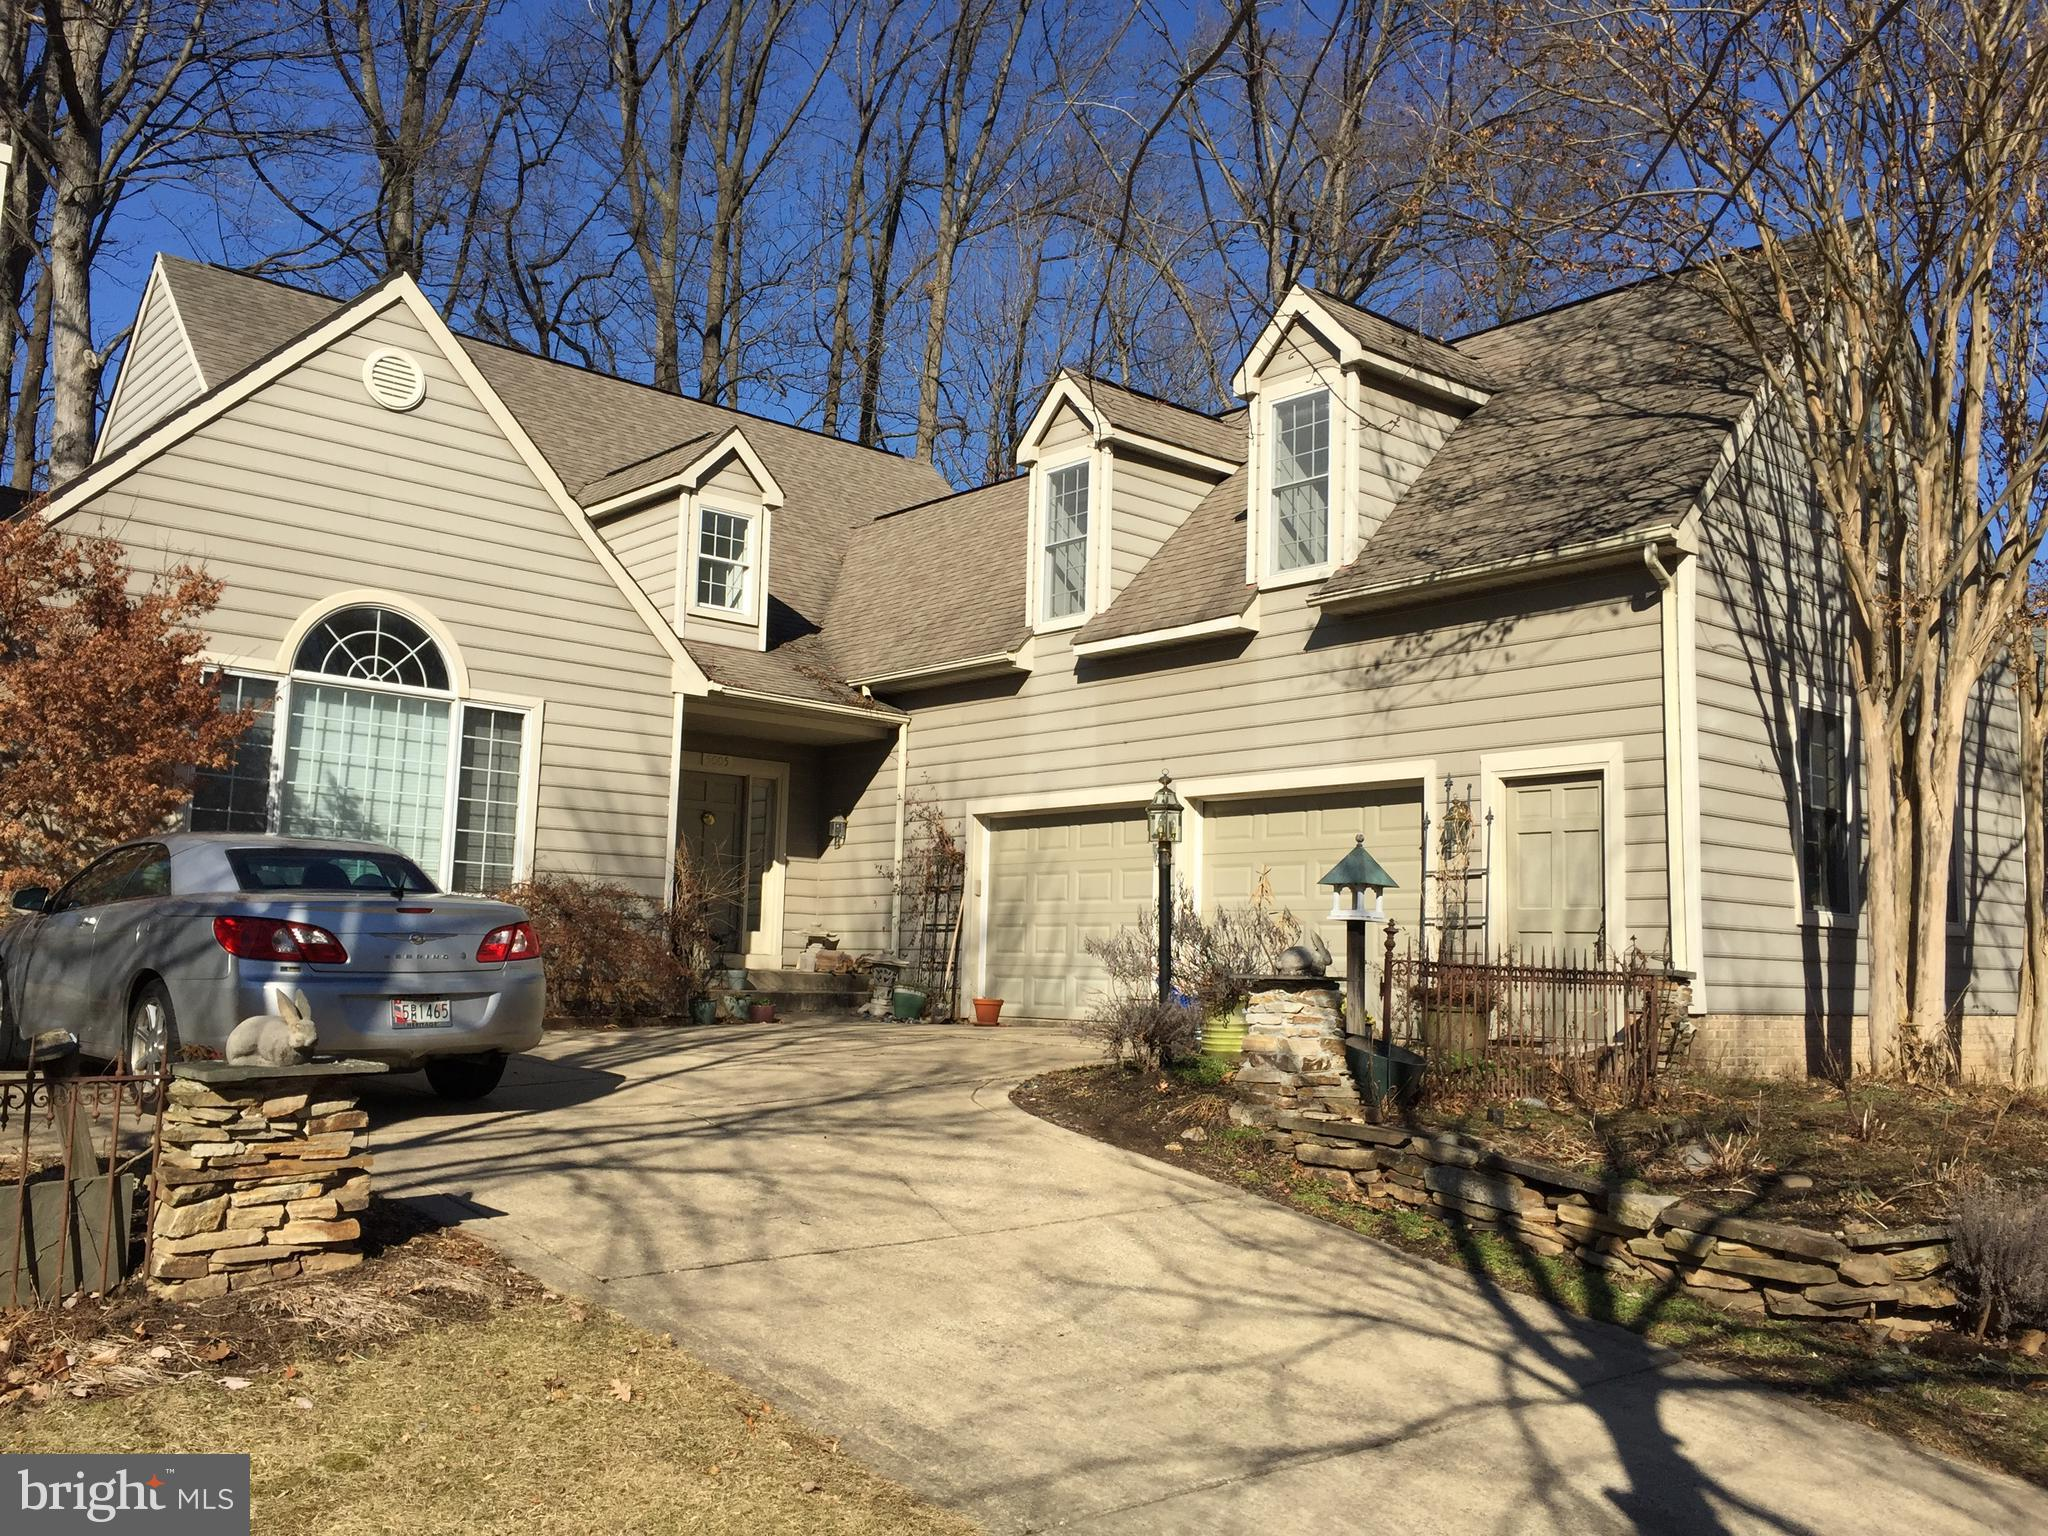 5005 STRAIGHT STAR PLACE, COLUMBIA, MD 21044